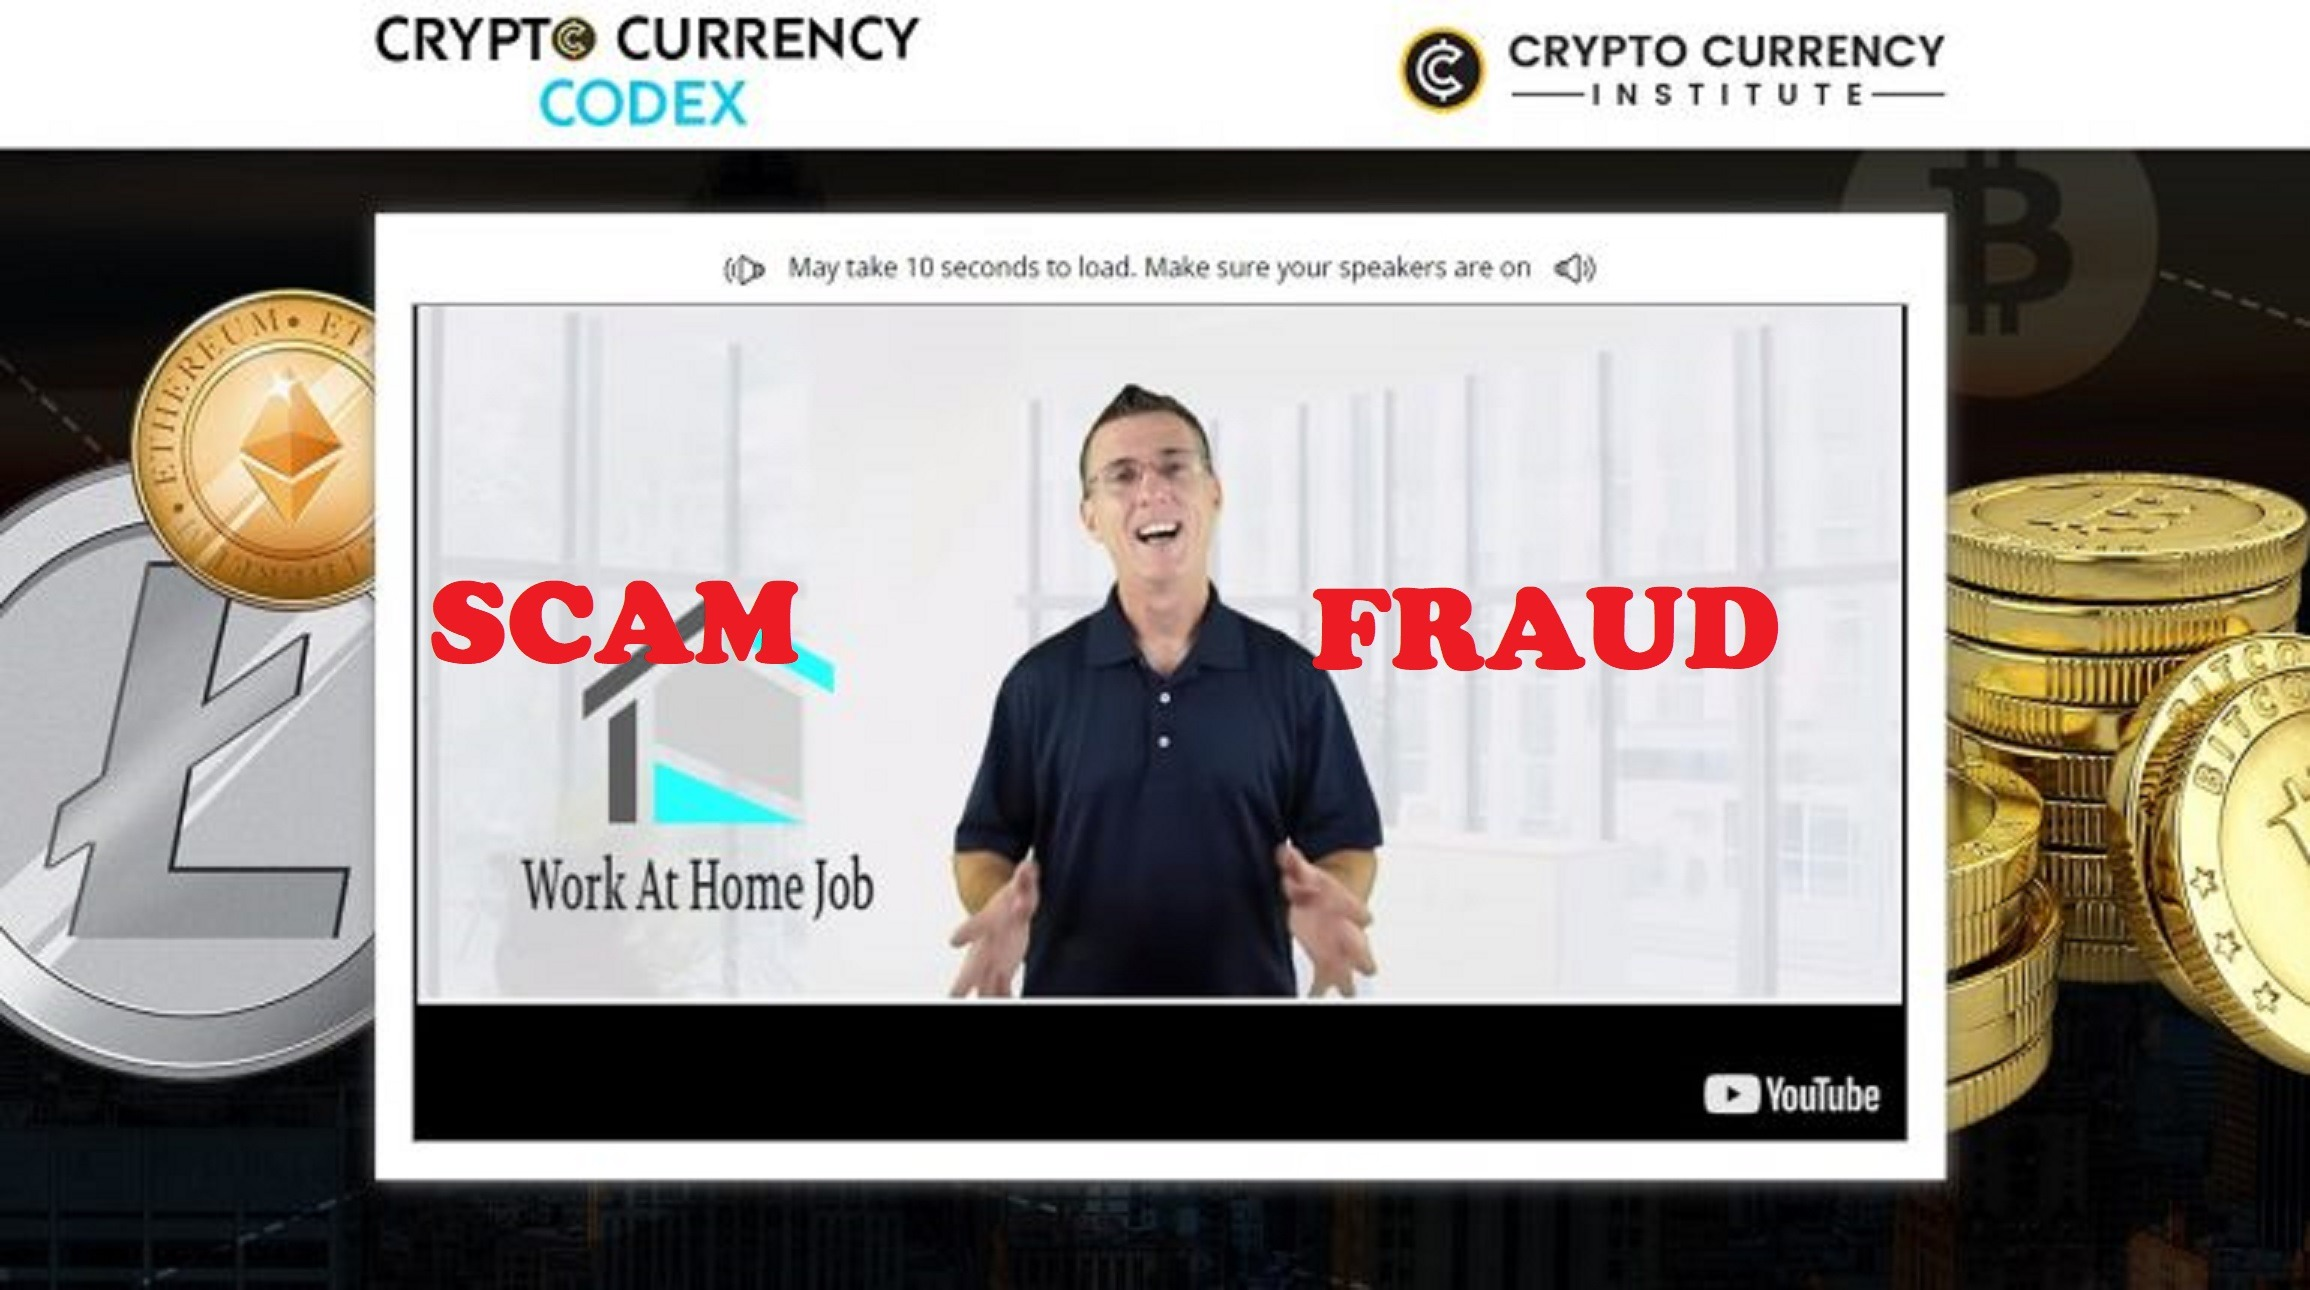 Crypto Currency Codex Scam